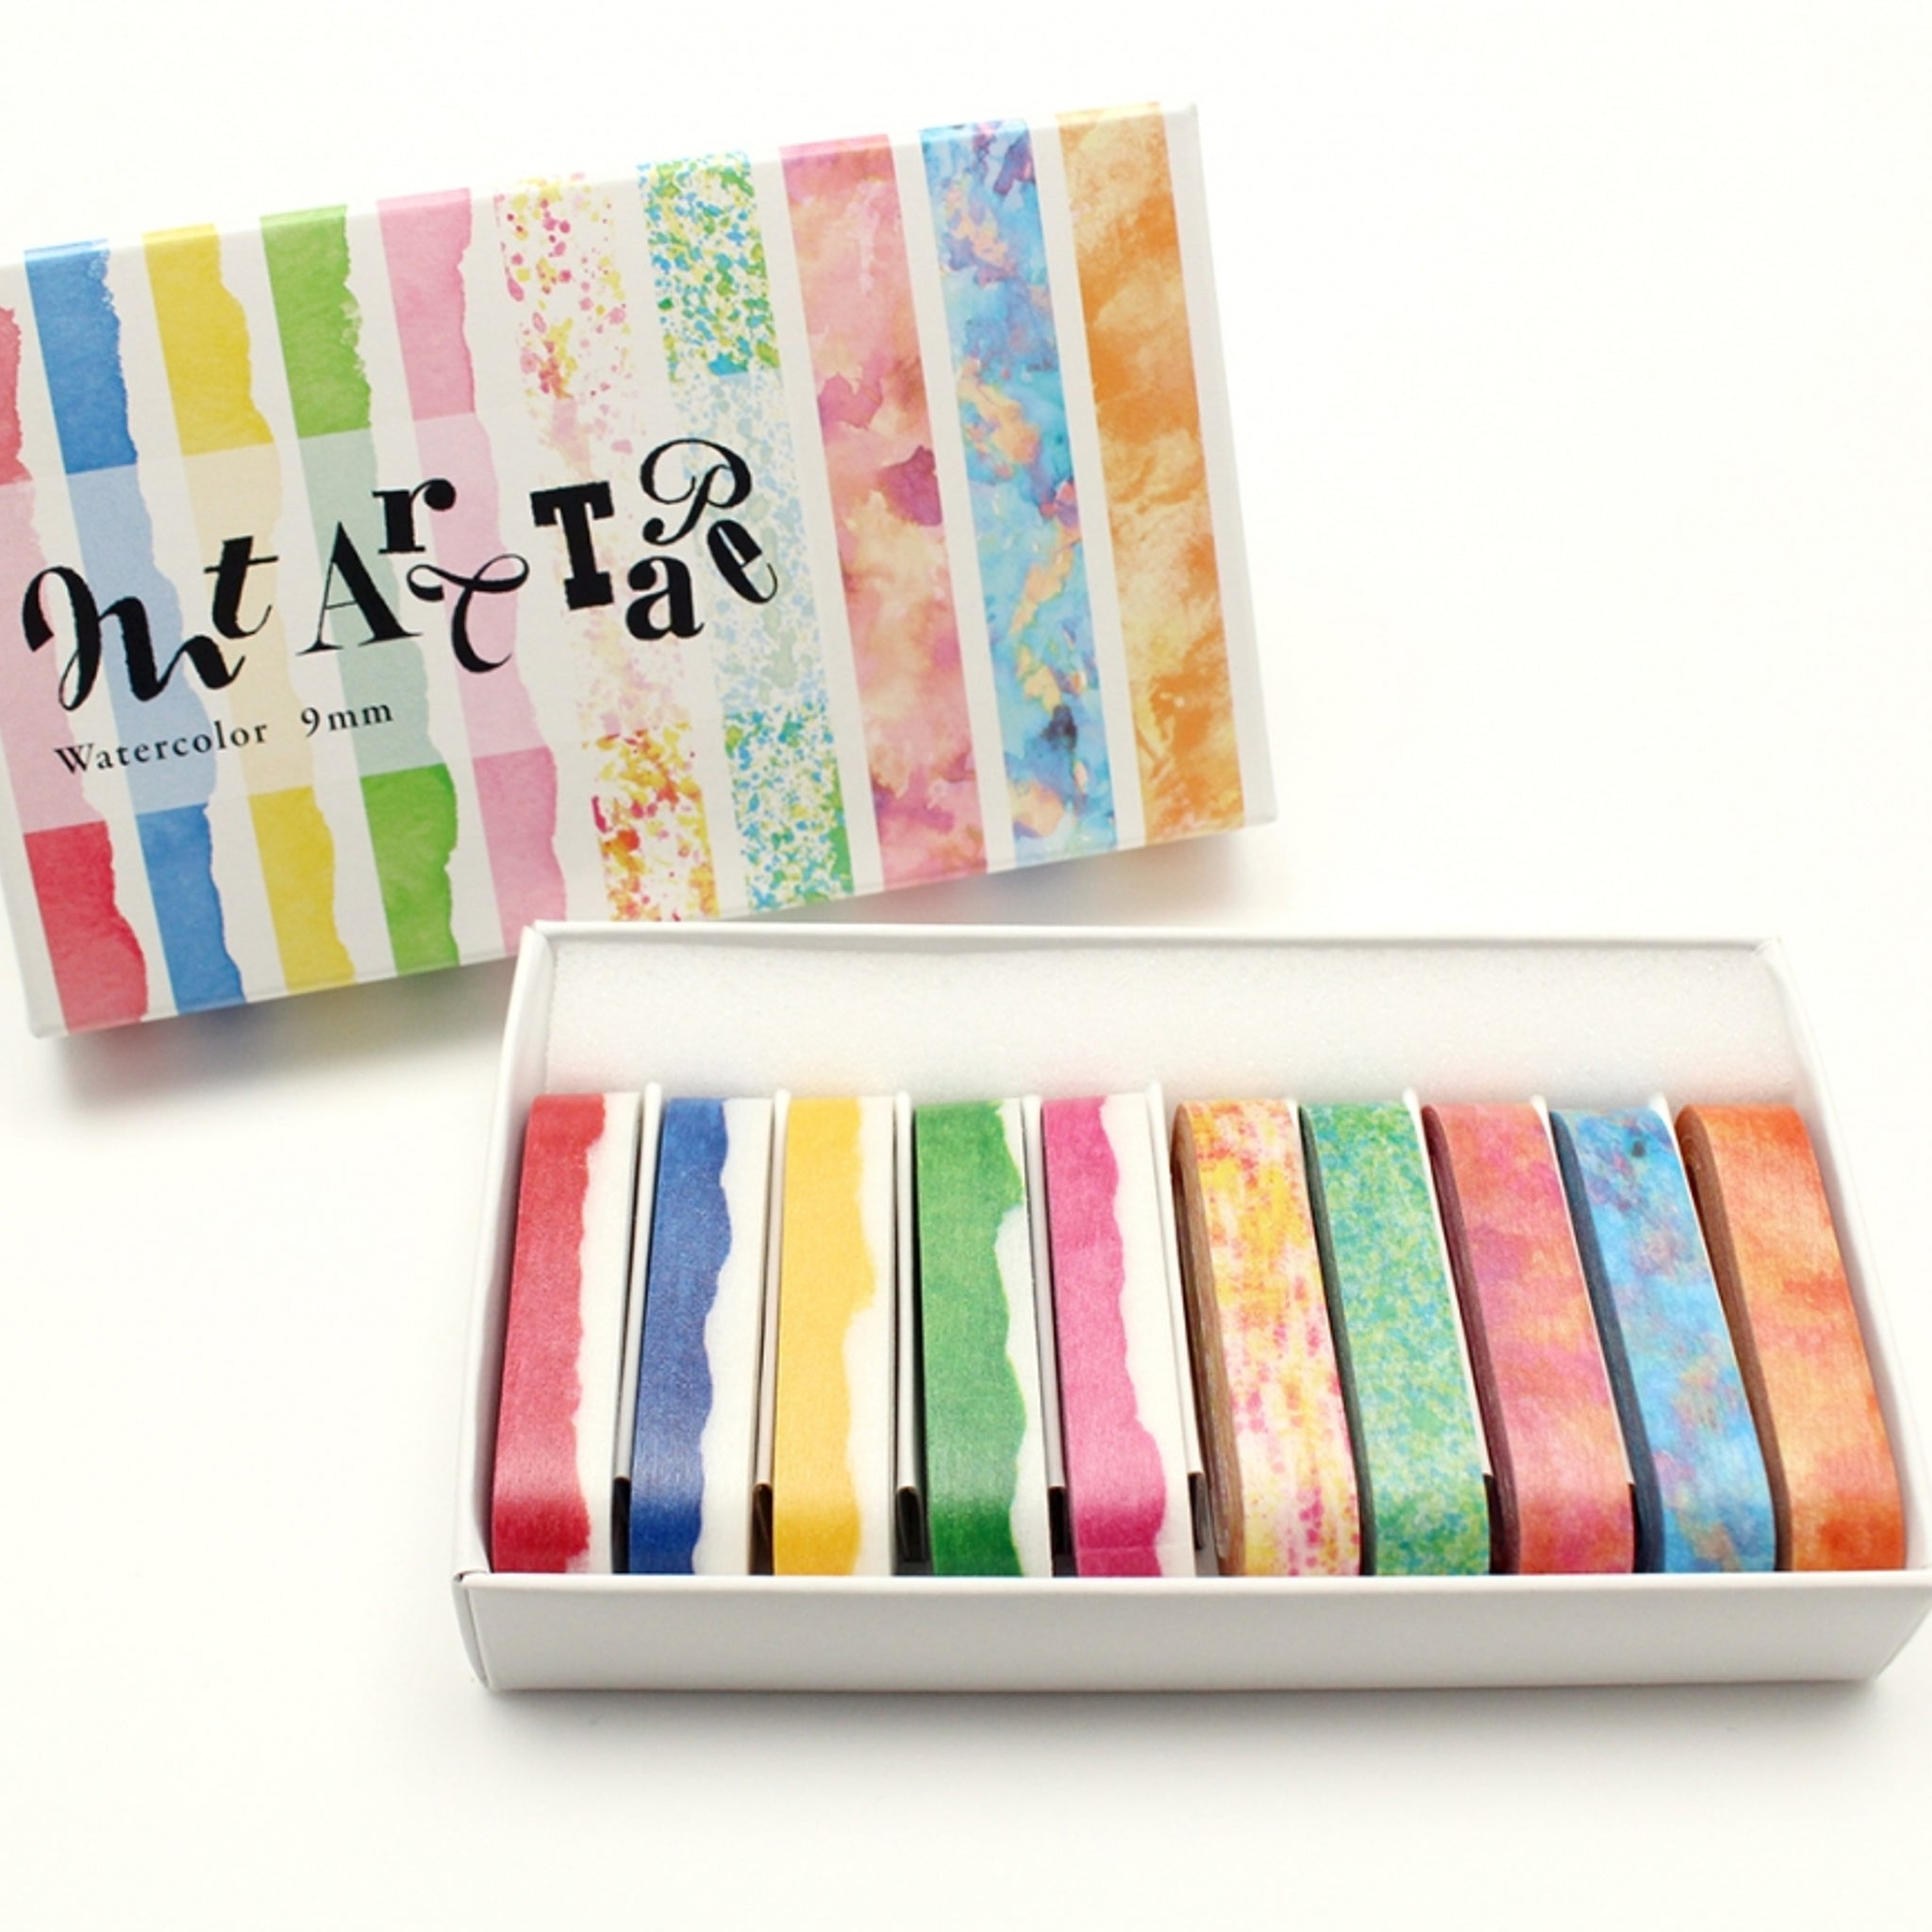 MT Art Washi Tape Watercolors 9mm